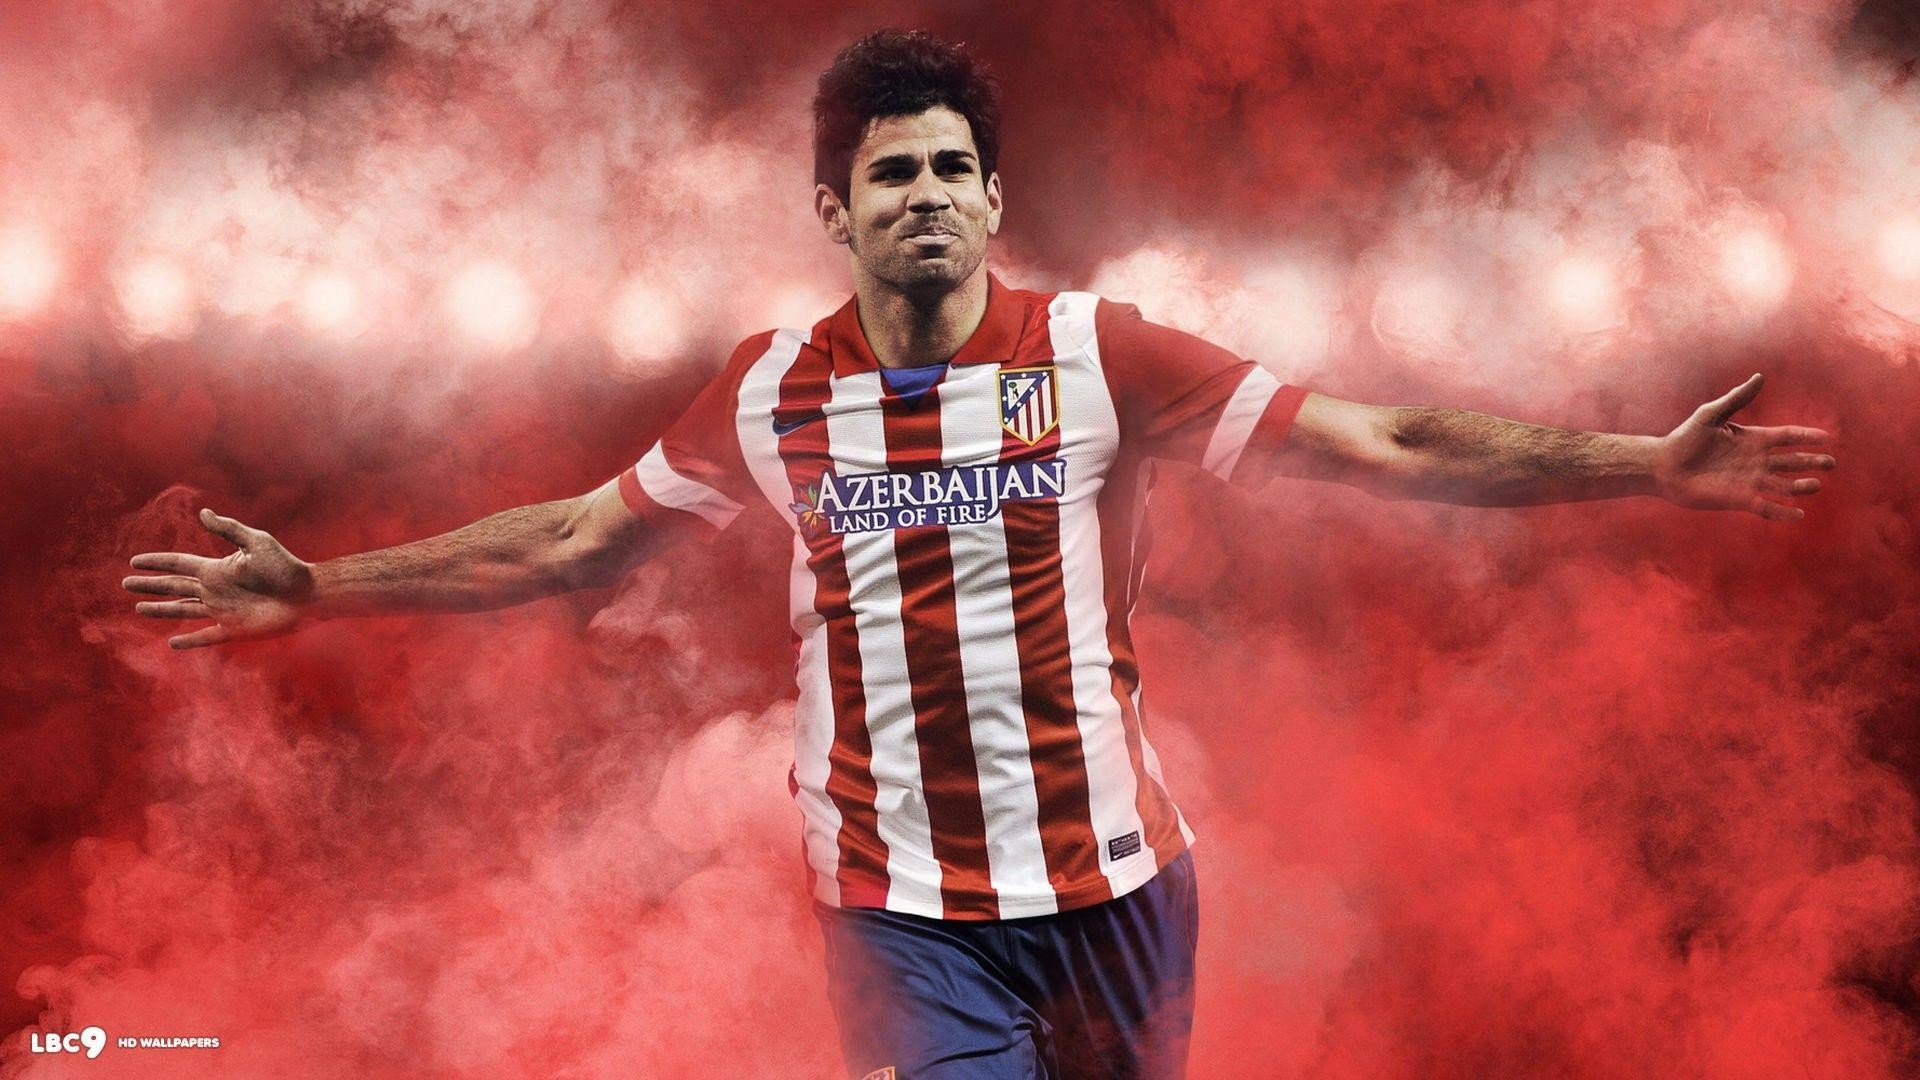 1920x1080 Download Diego Costa Wallpapers HD Wallpaper